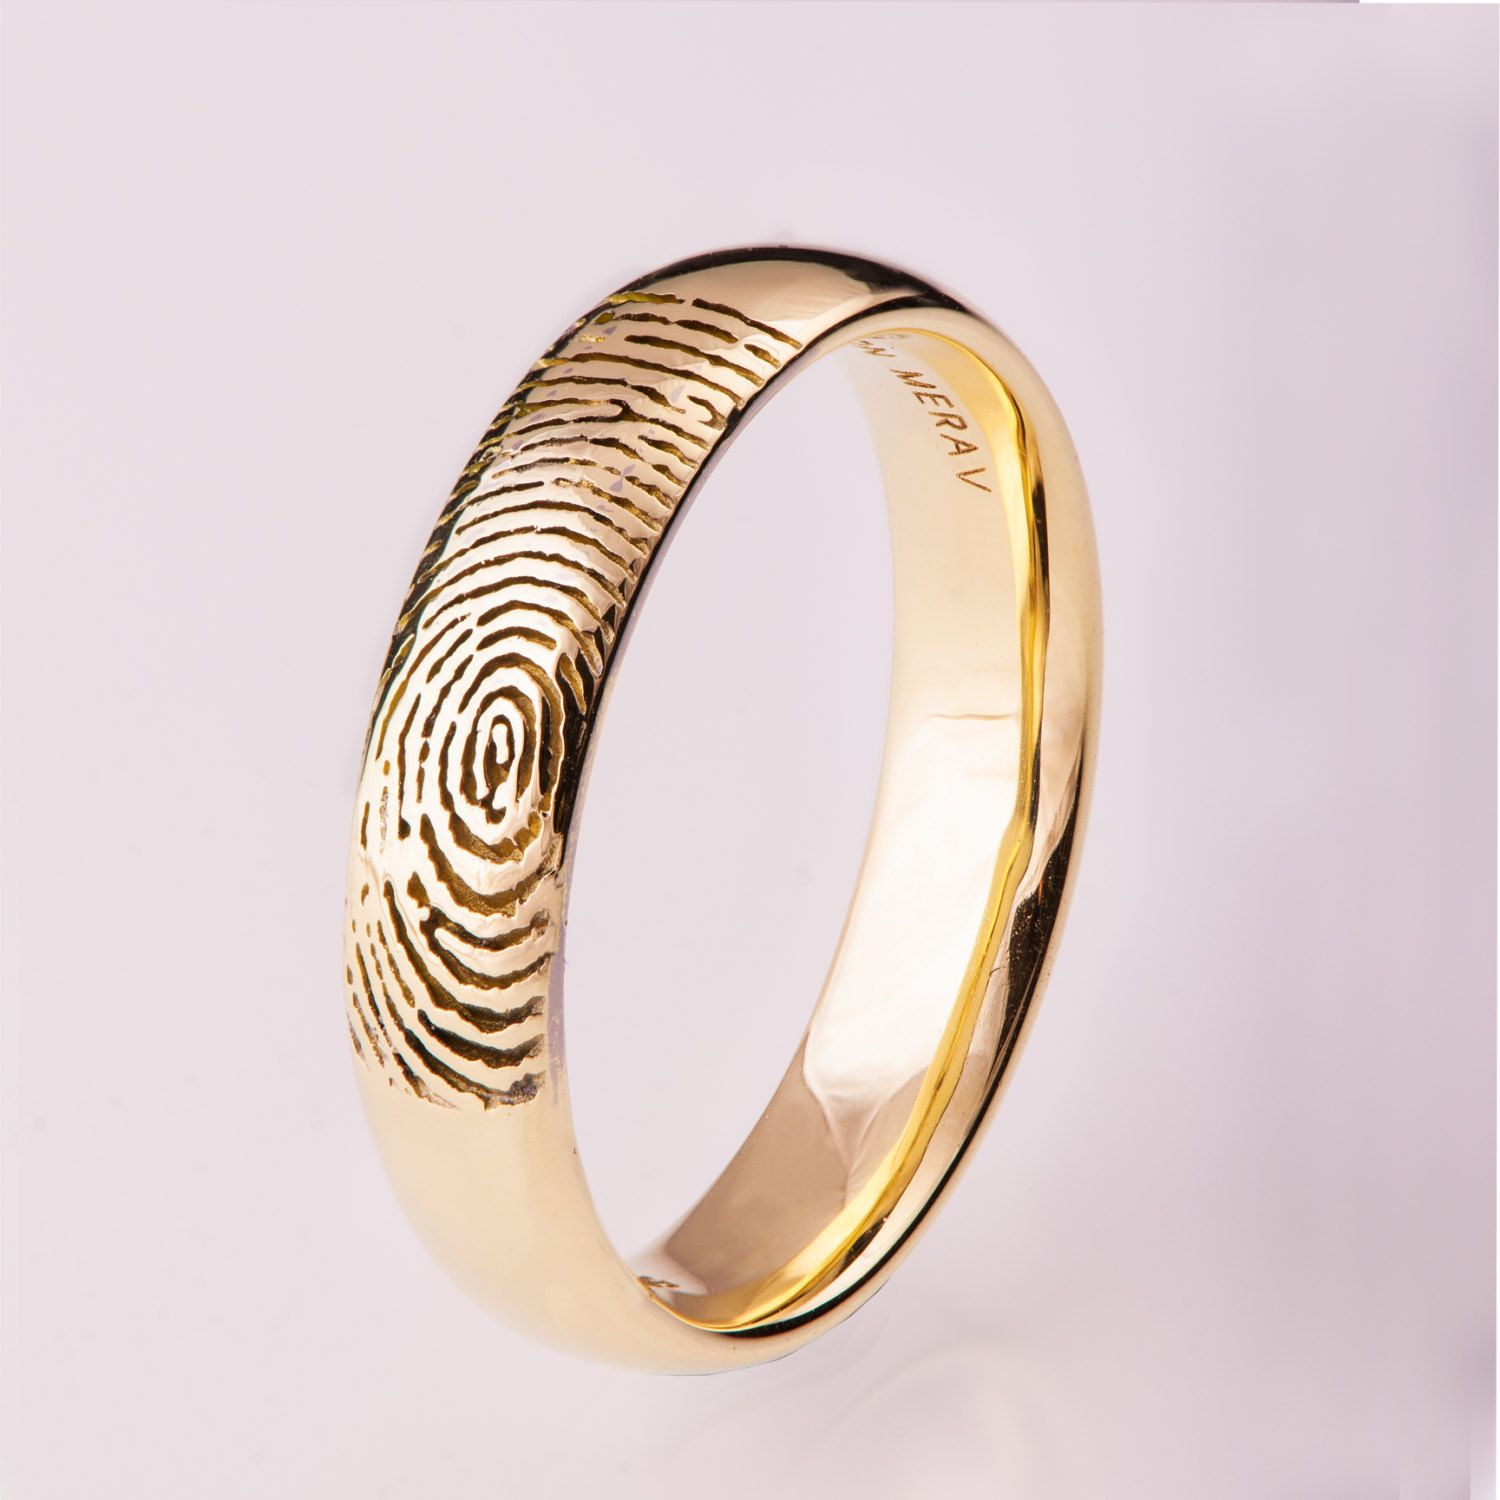 shavit rings fingerprint aa meyrav online product sharon tali wedding ring